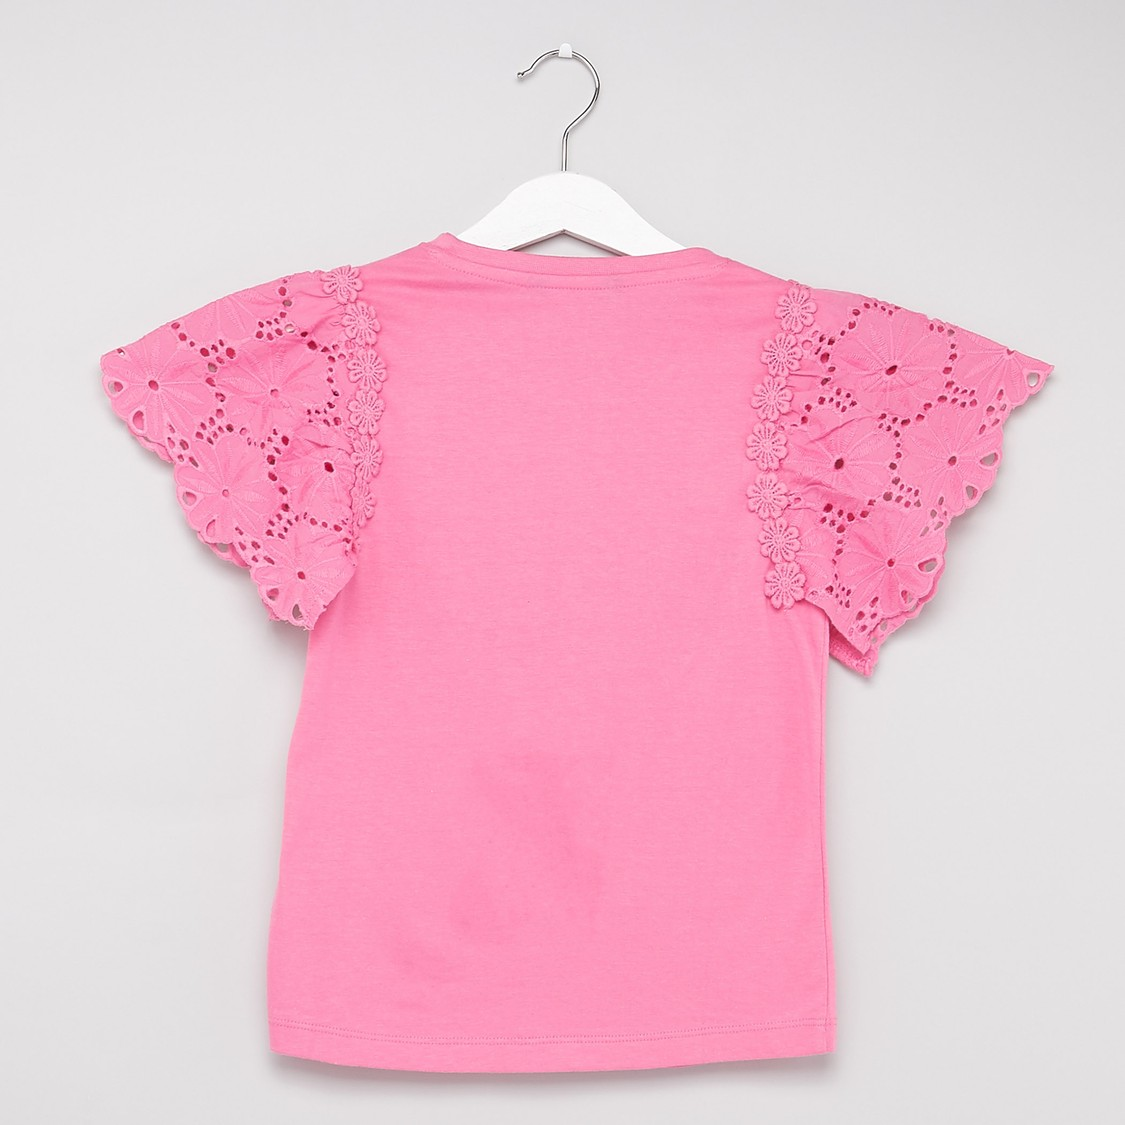 Embellished Round Neck Top with Schiffli Detail Sleeves